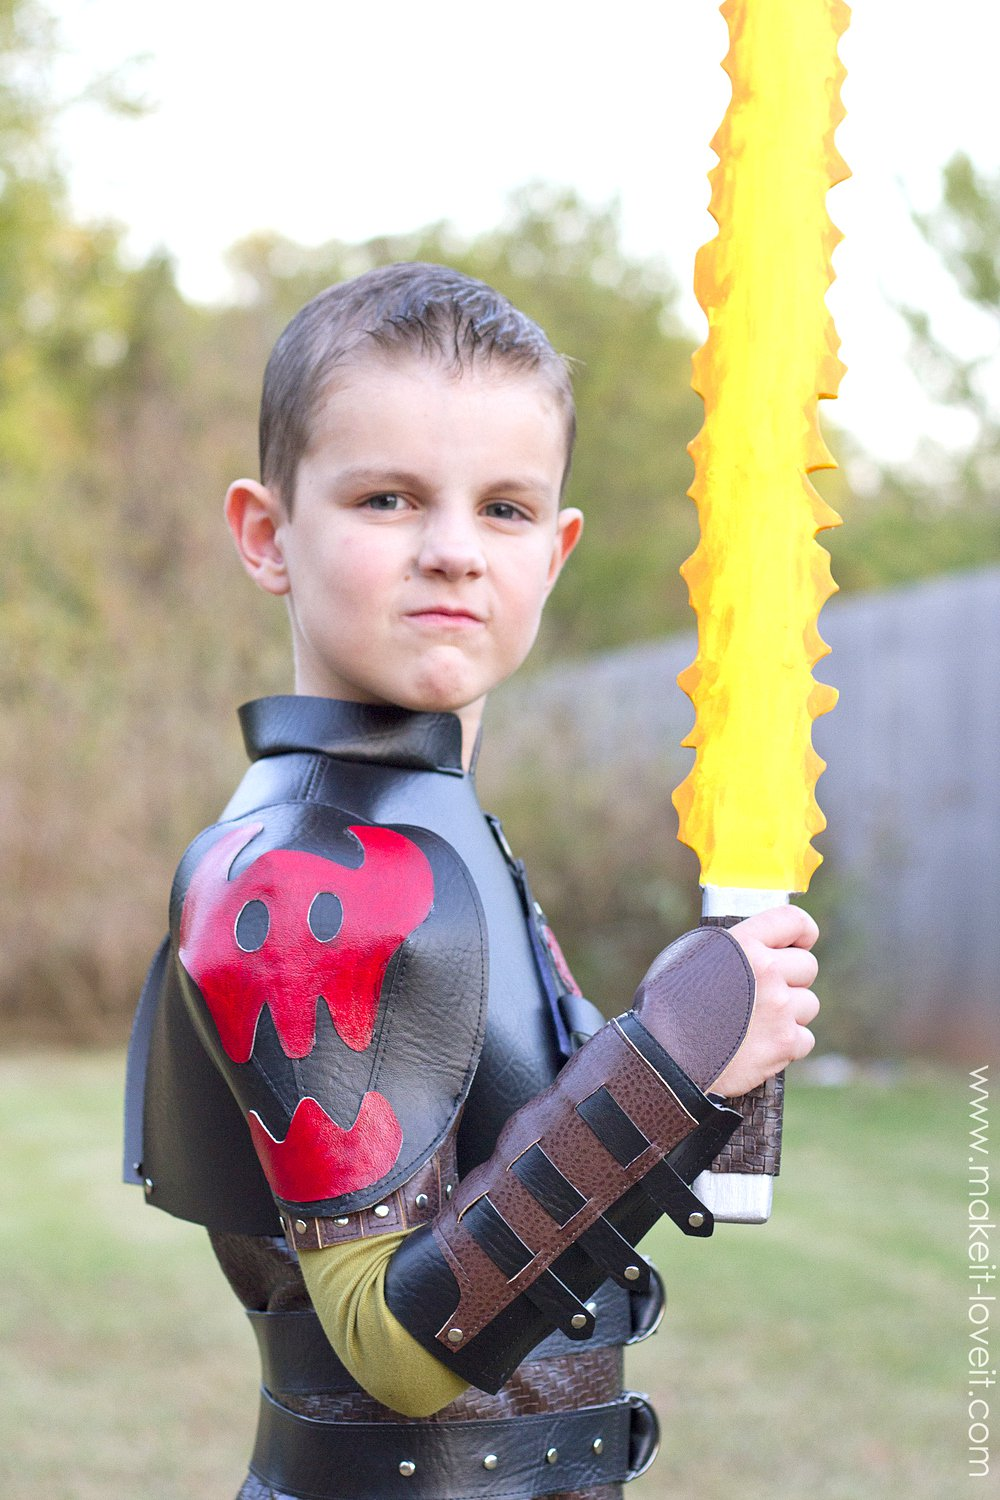 hiccup-costume-how-to-train-your-dragon-7